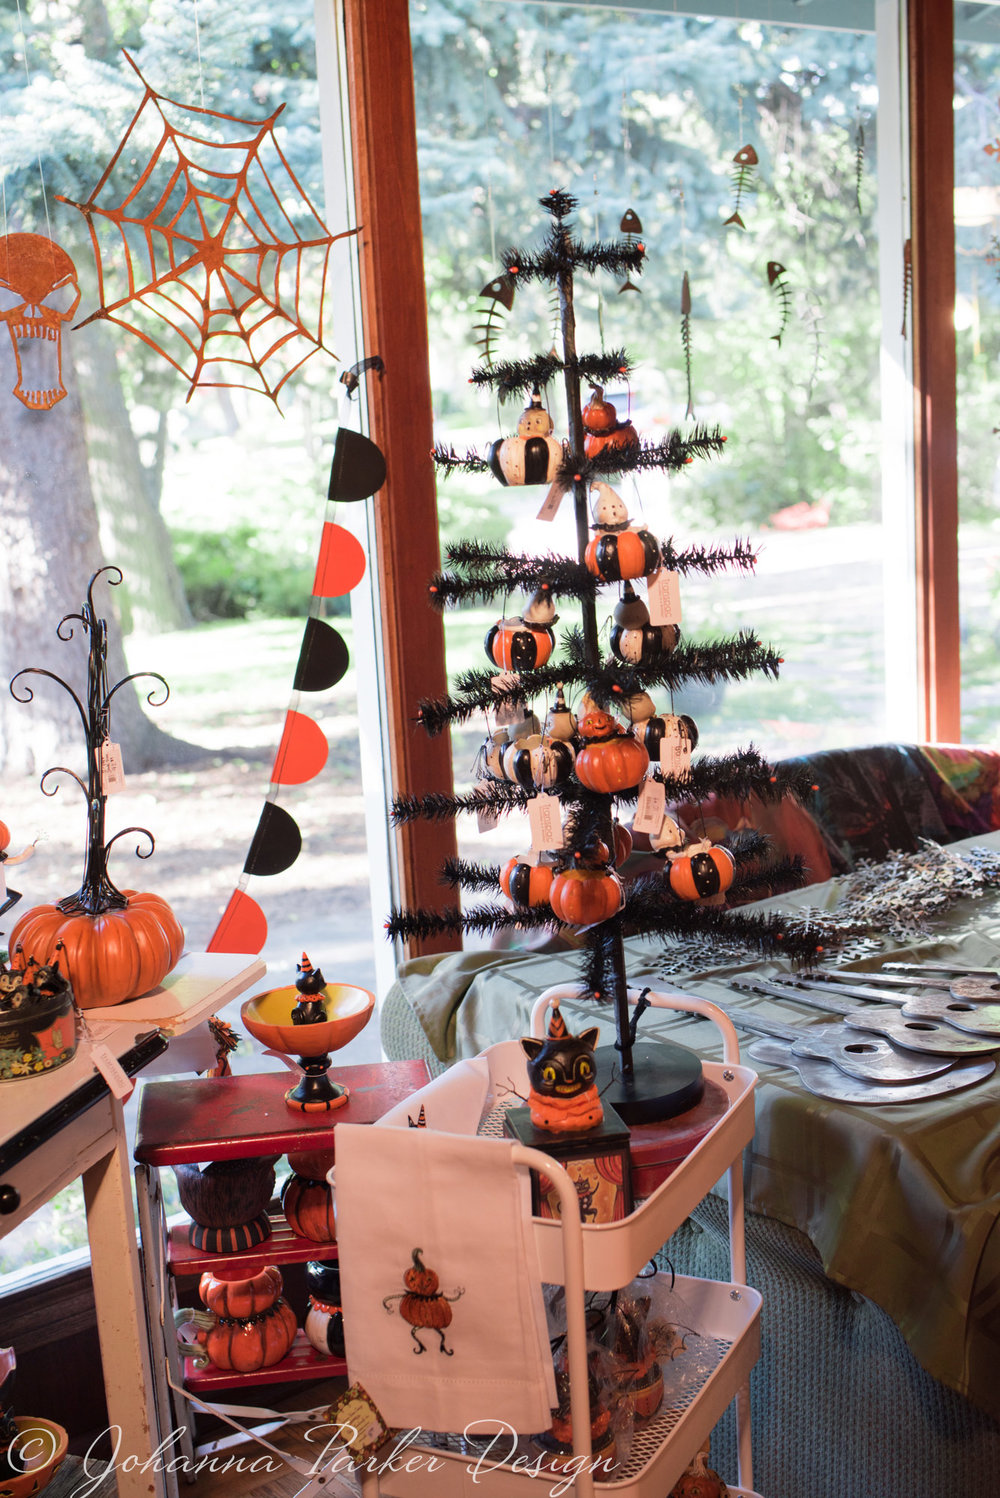 Johanna-Parker-Halloween-ornament-pails-tree.jpg